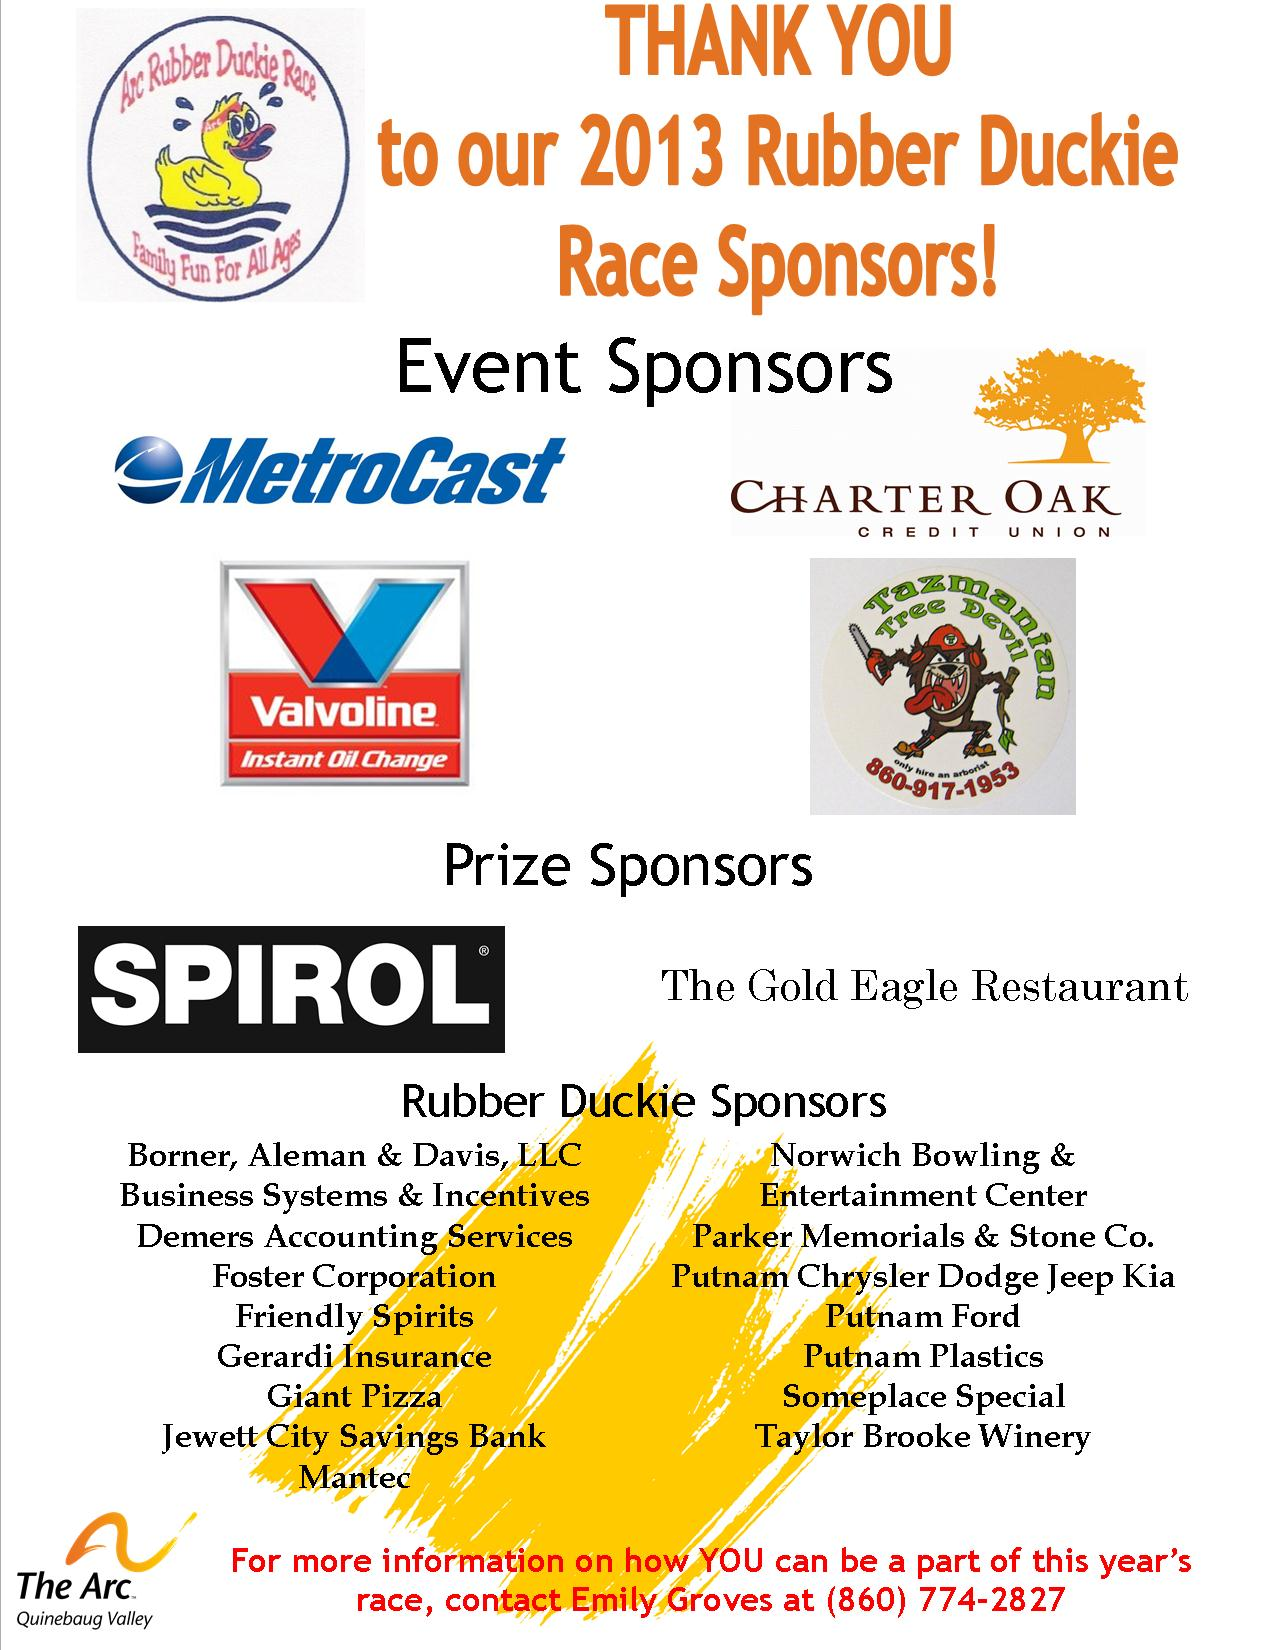 Duck 2013 Sponsors Thank You